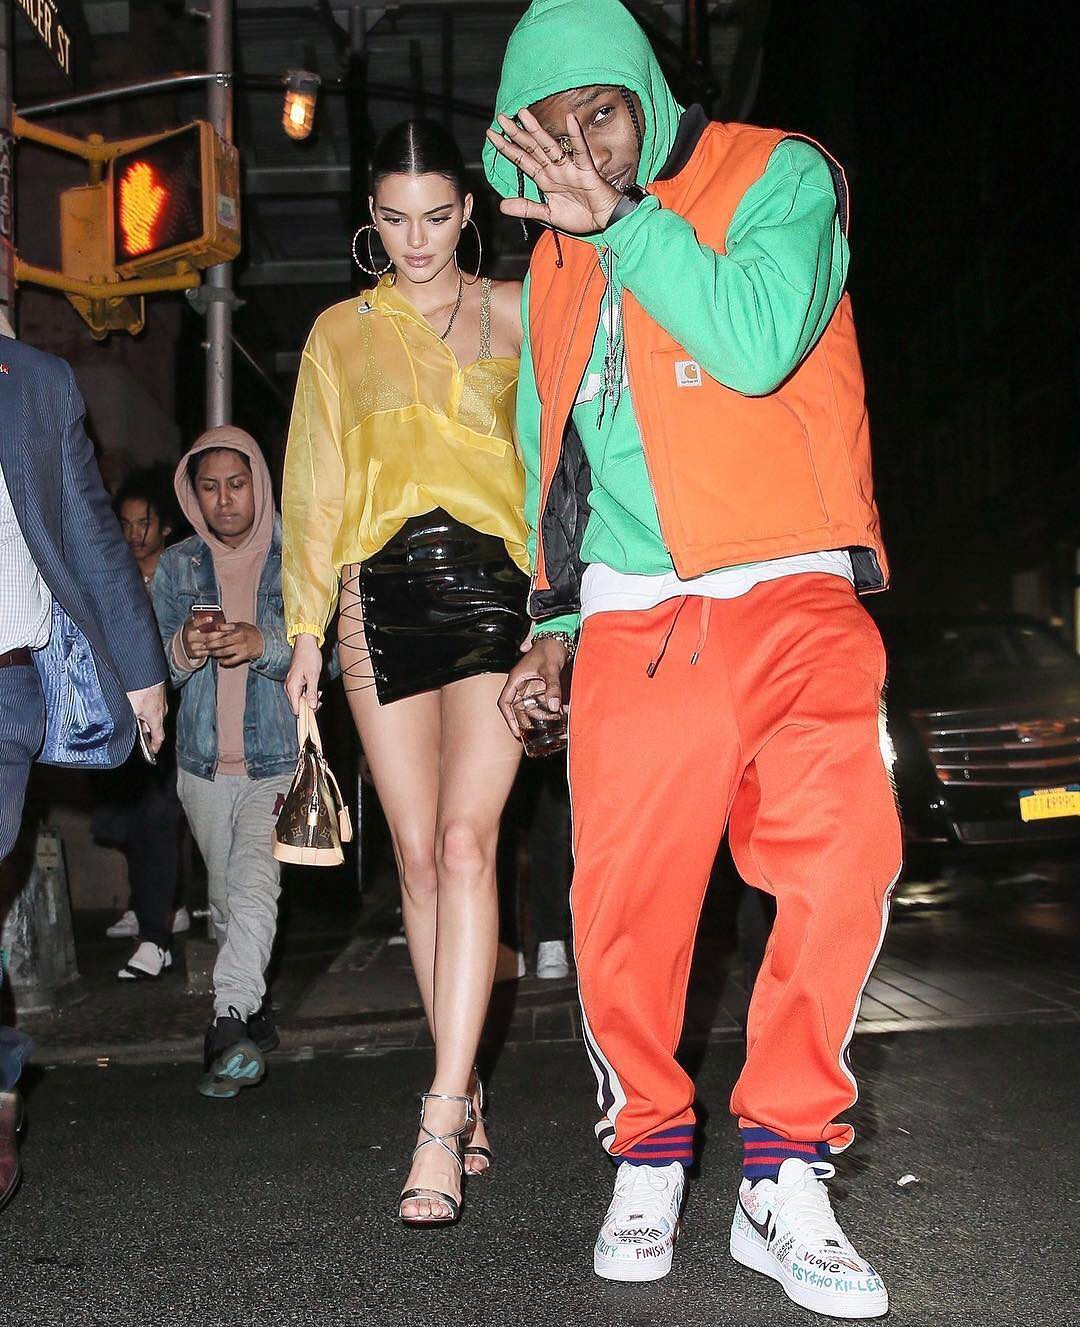 SPOTTED: A$AP Rocky In Unreleased Carharrt x VLONE Vest, Gucci Track Pants And Nike Sneakers